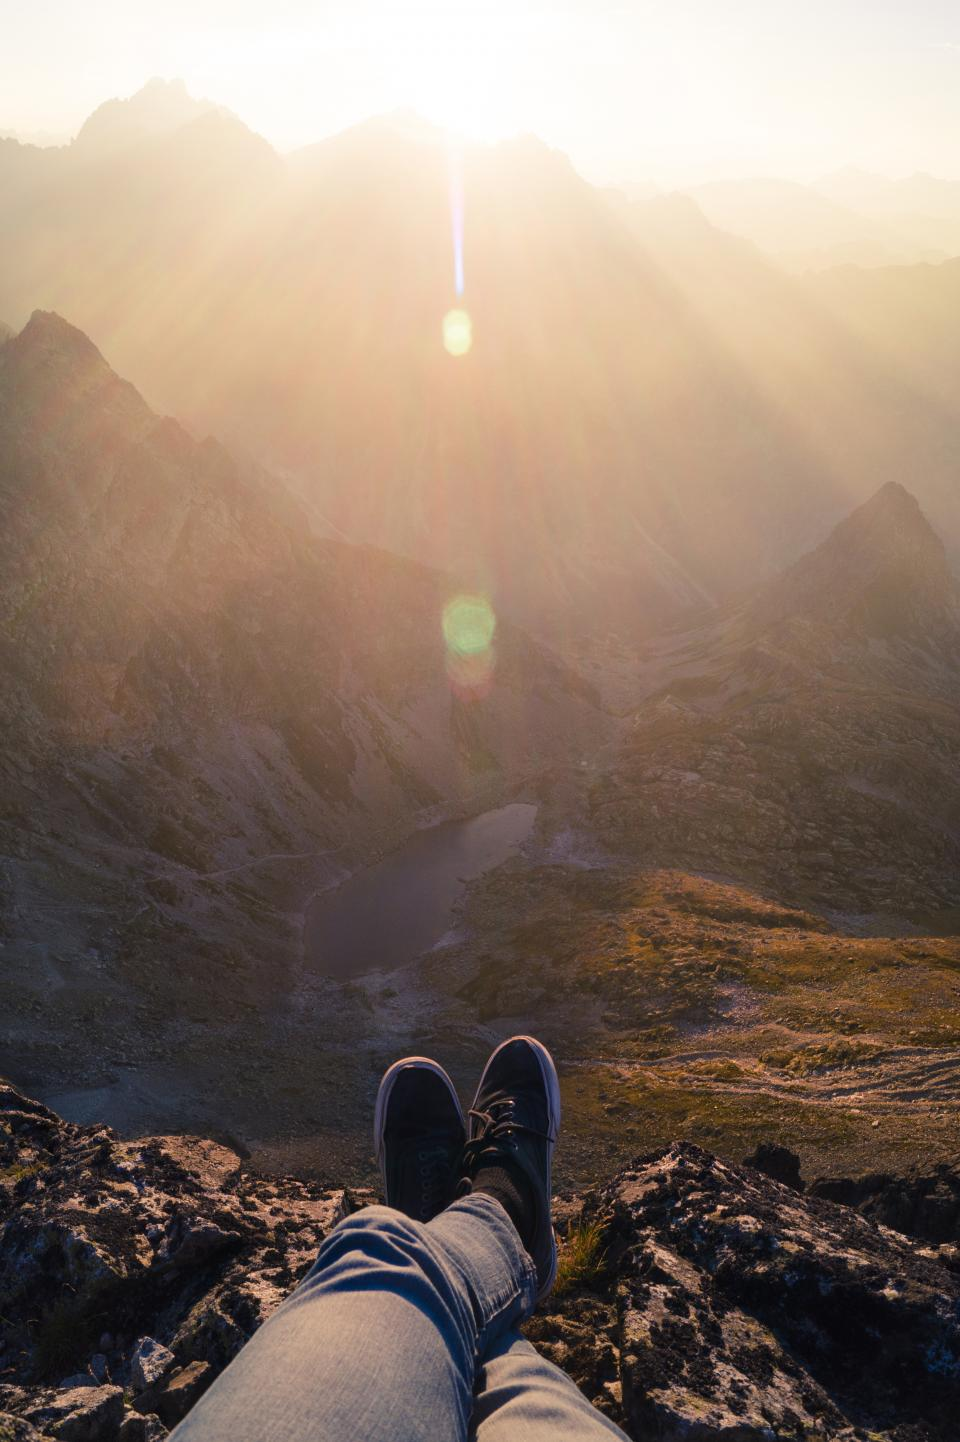 guy, man, male, people, feet, legs, shoes, sneakers, pants, nature, landscape, mountains, rocks, lake, sky, solar, flare, sunlight